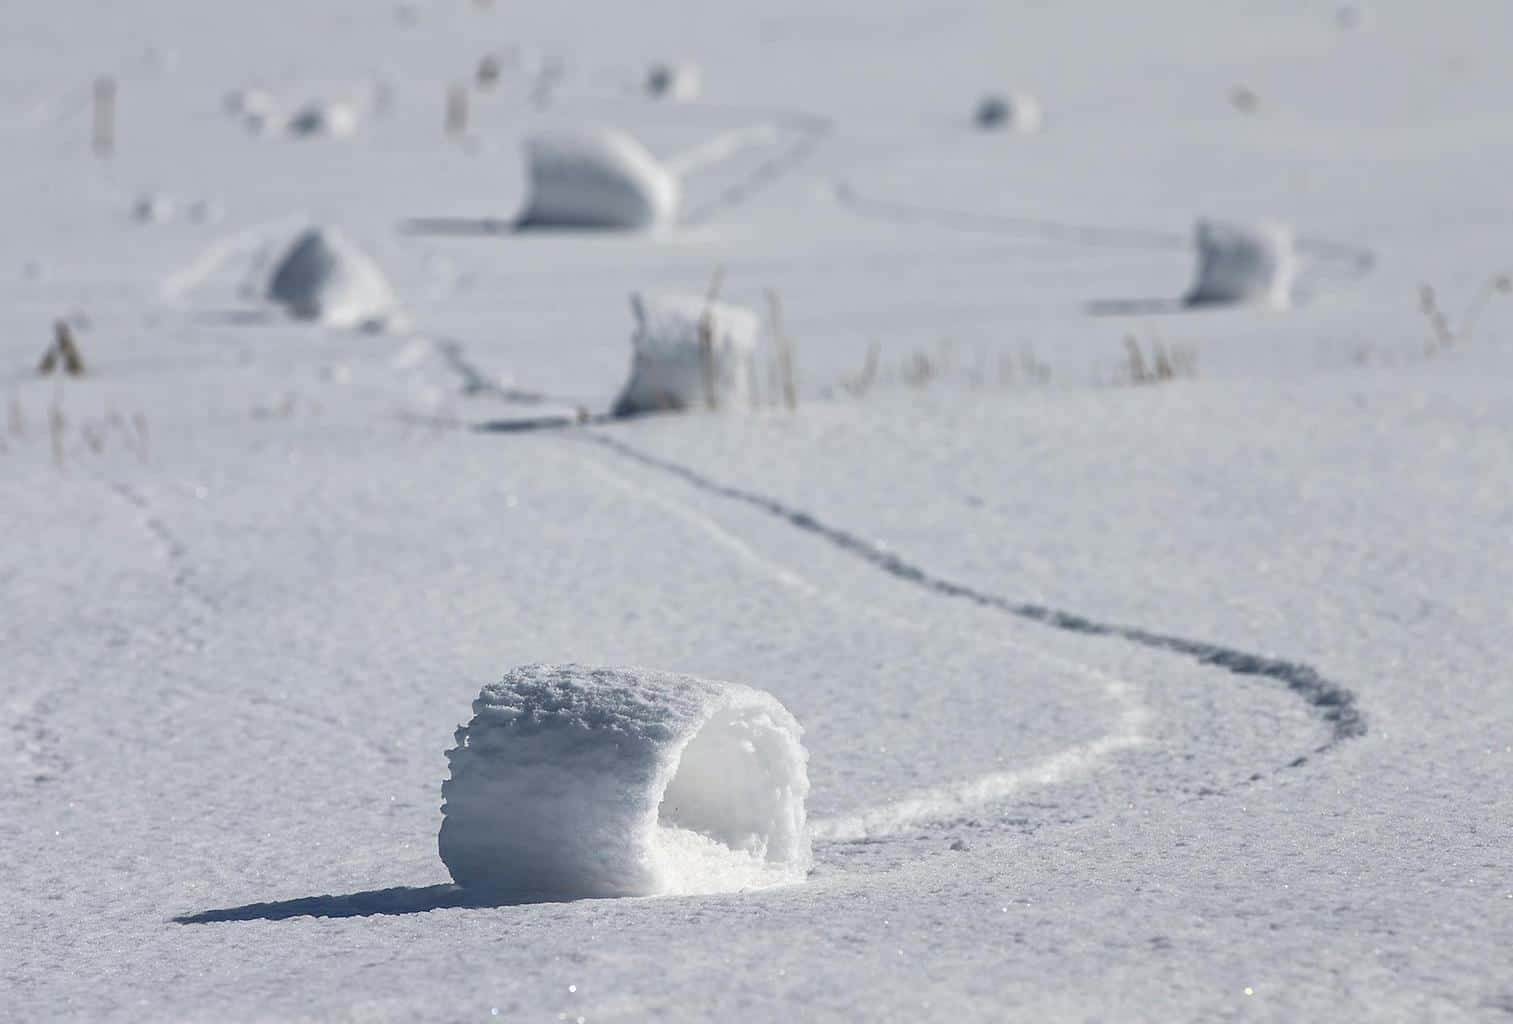 THOUSANDS of snow rollers formed in my county this last week. Click the link to see more photos and what causes them.